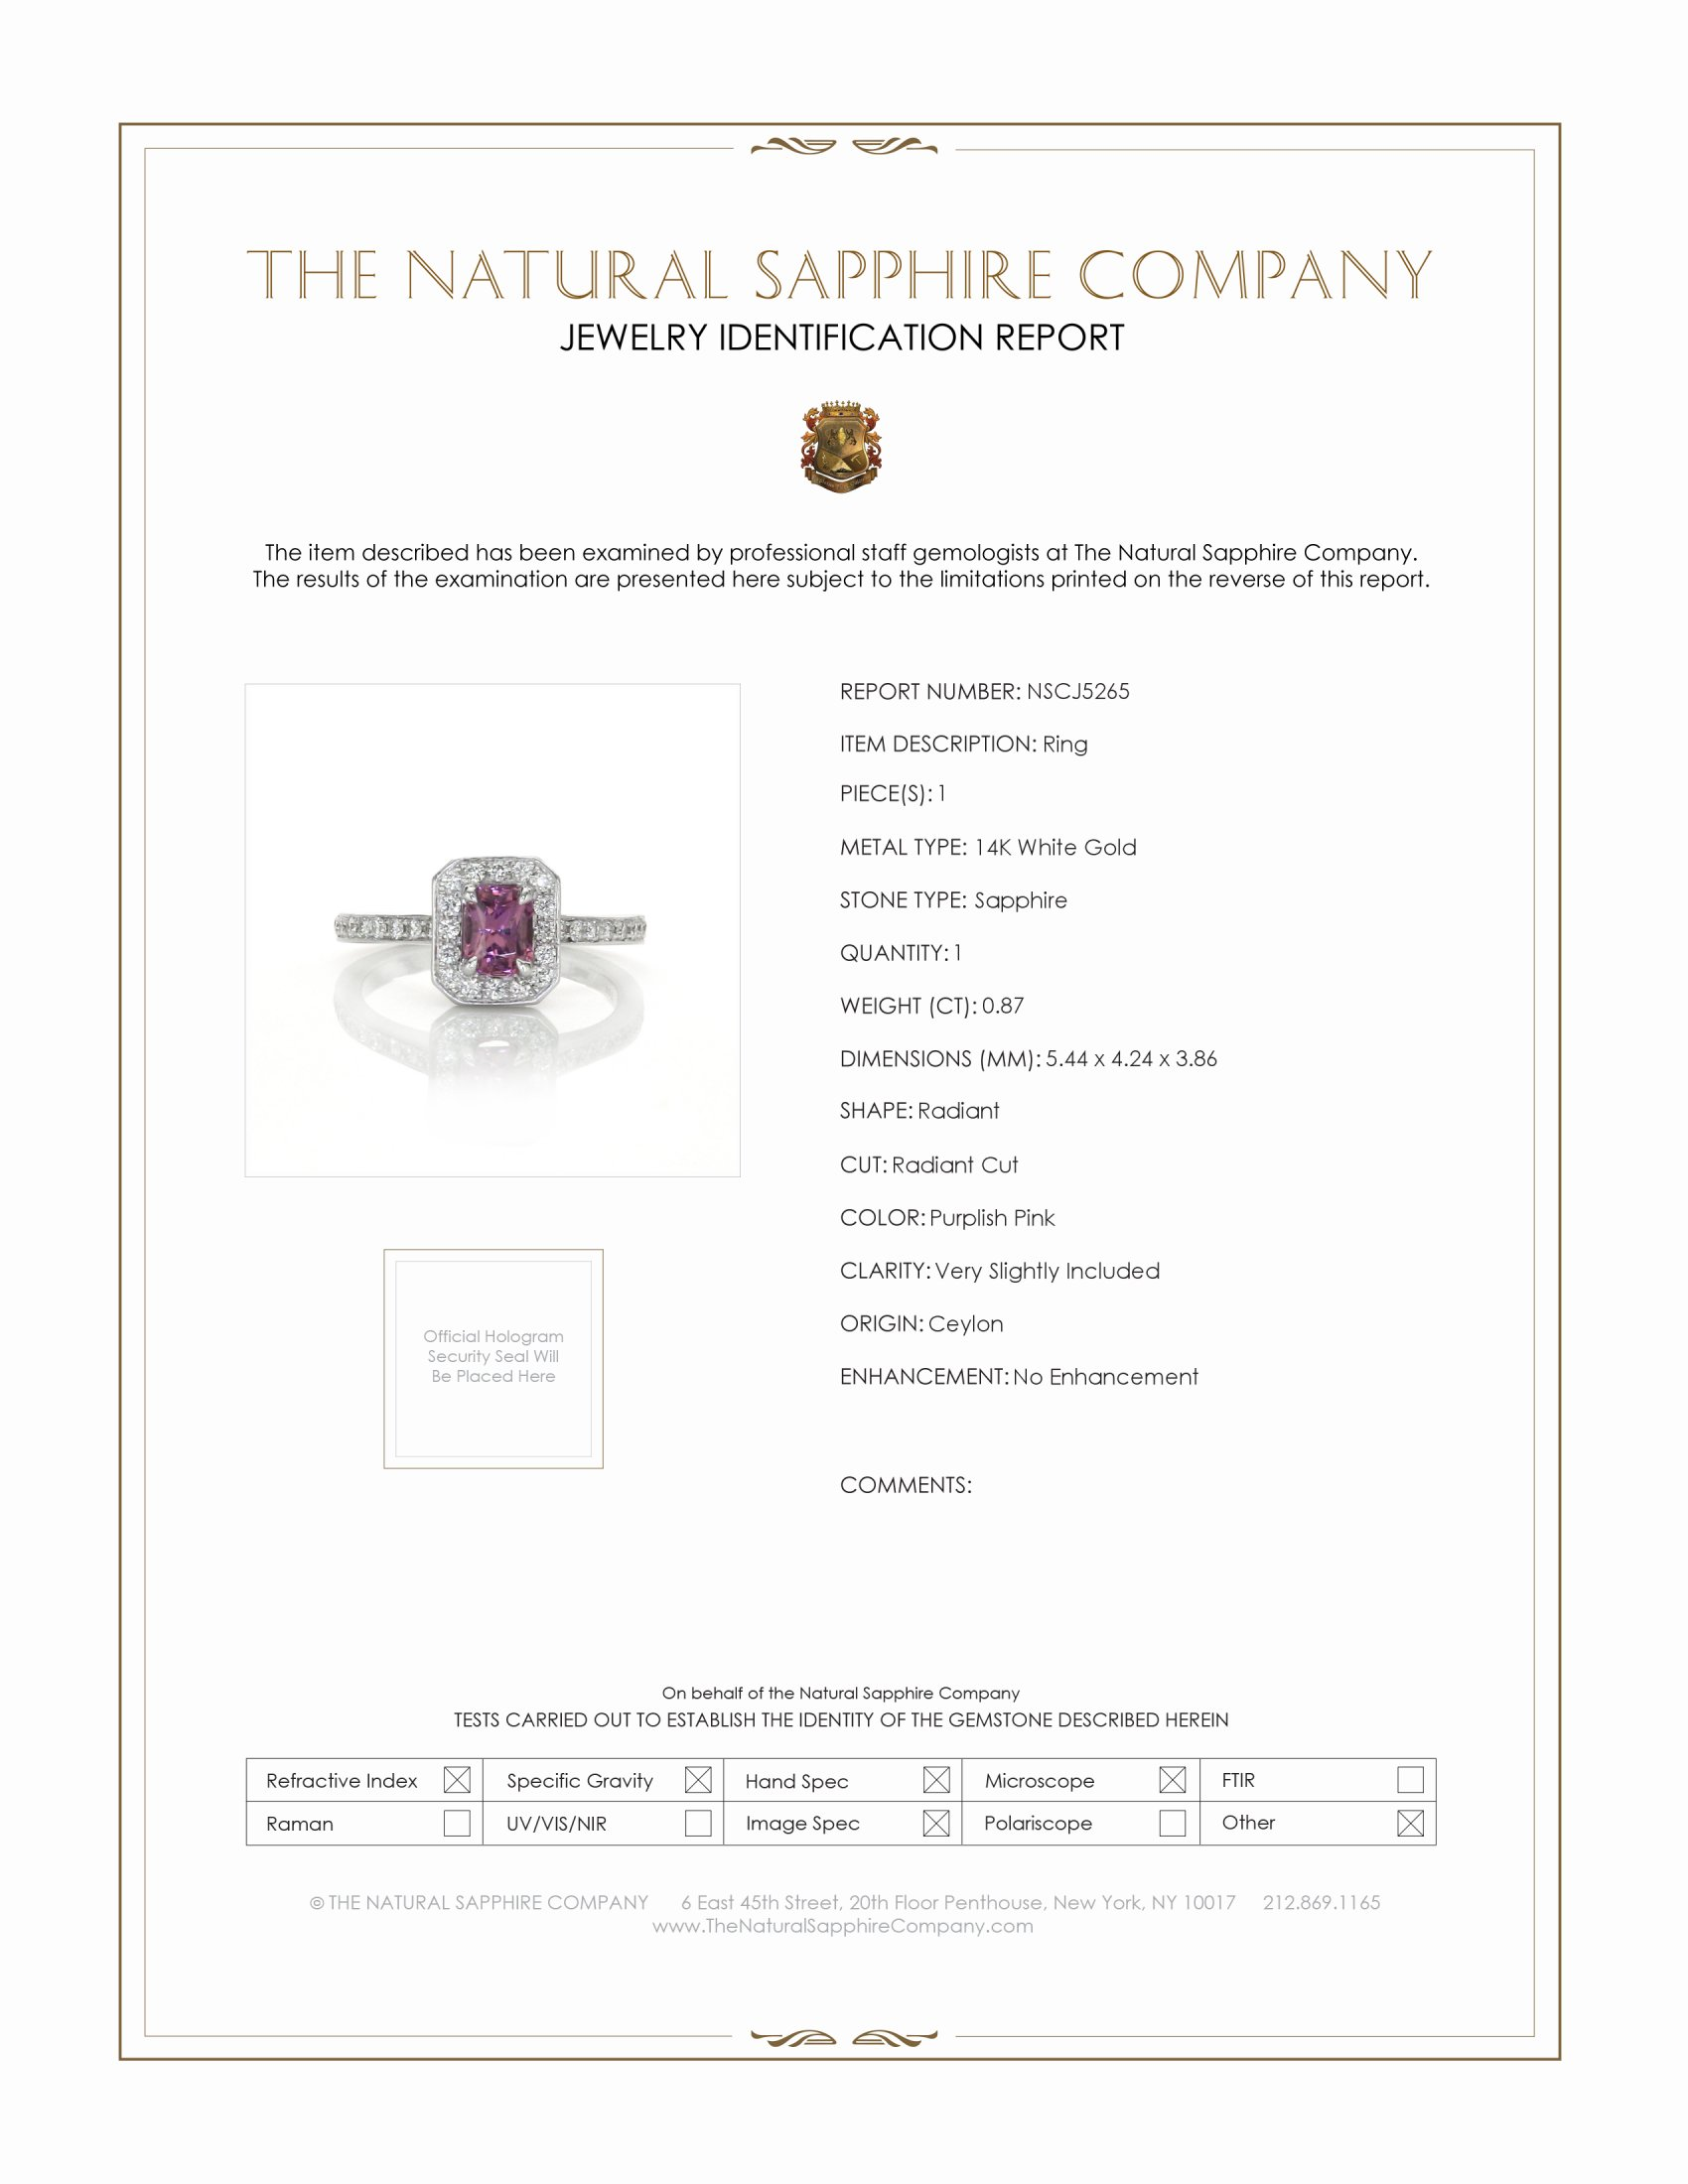 0.87ct Purplish Pink Sapphire Ring Certification